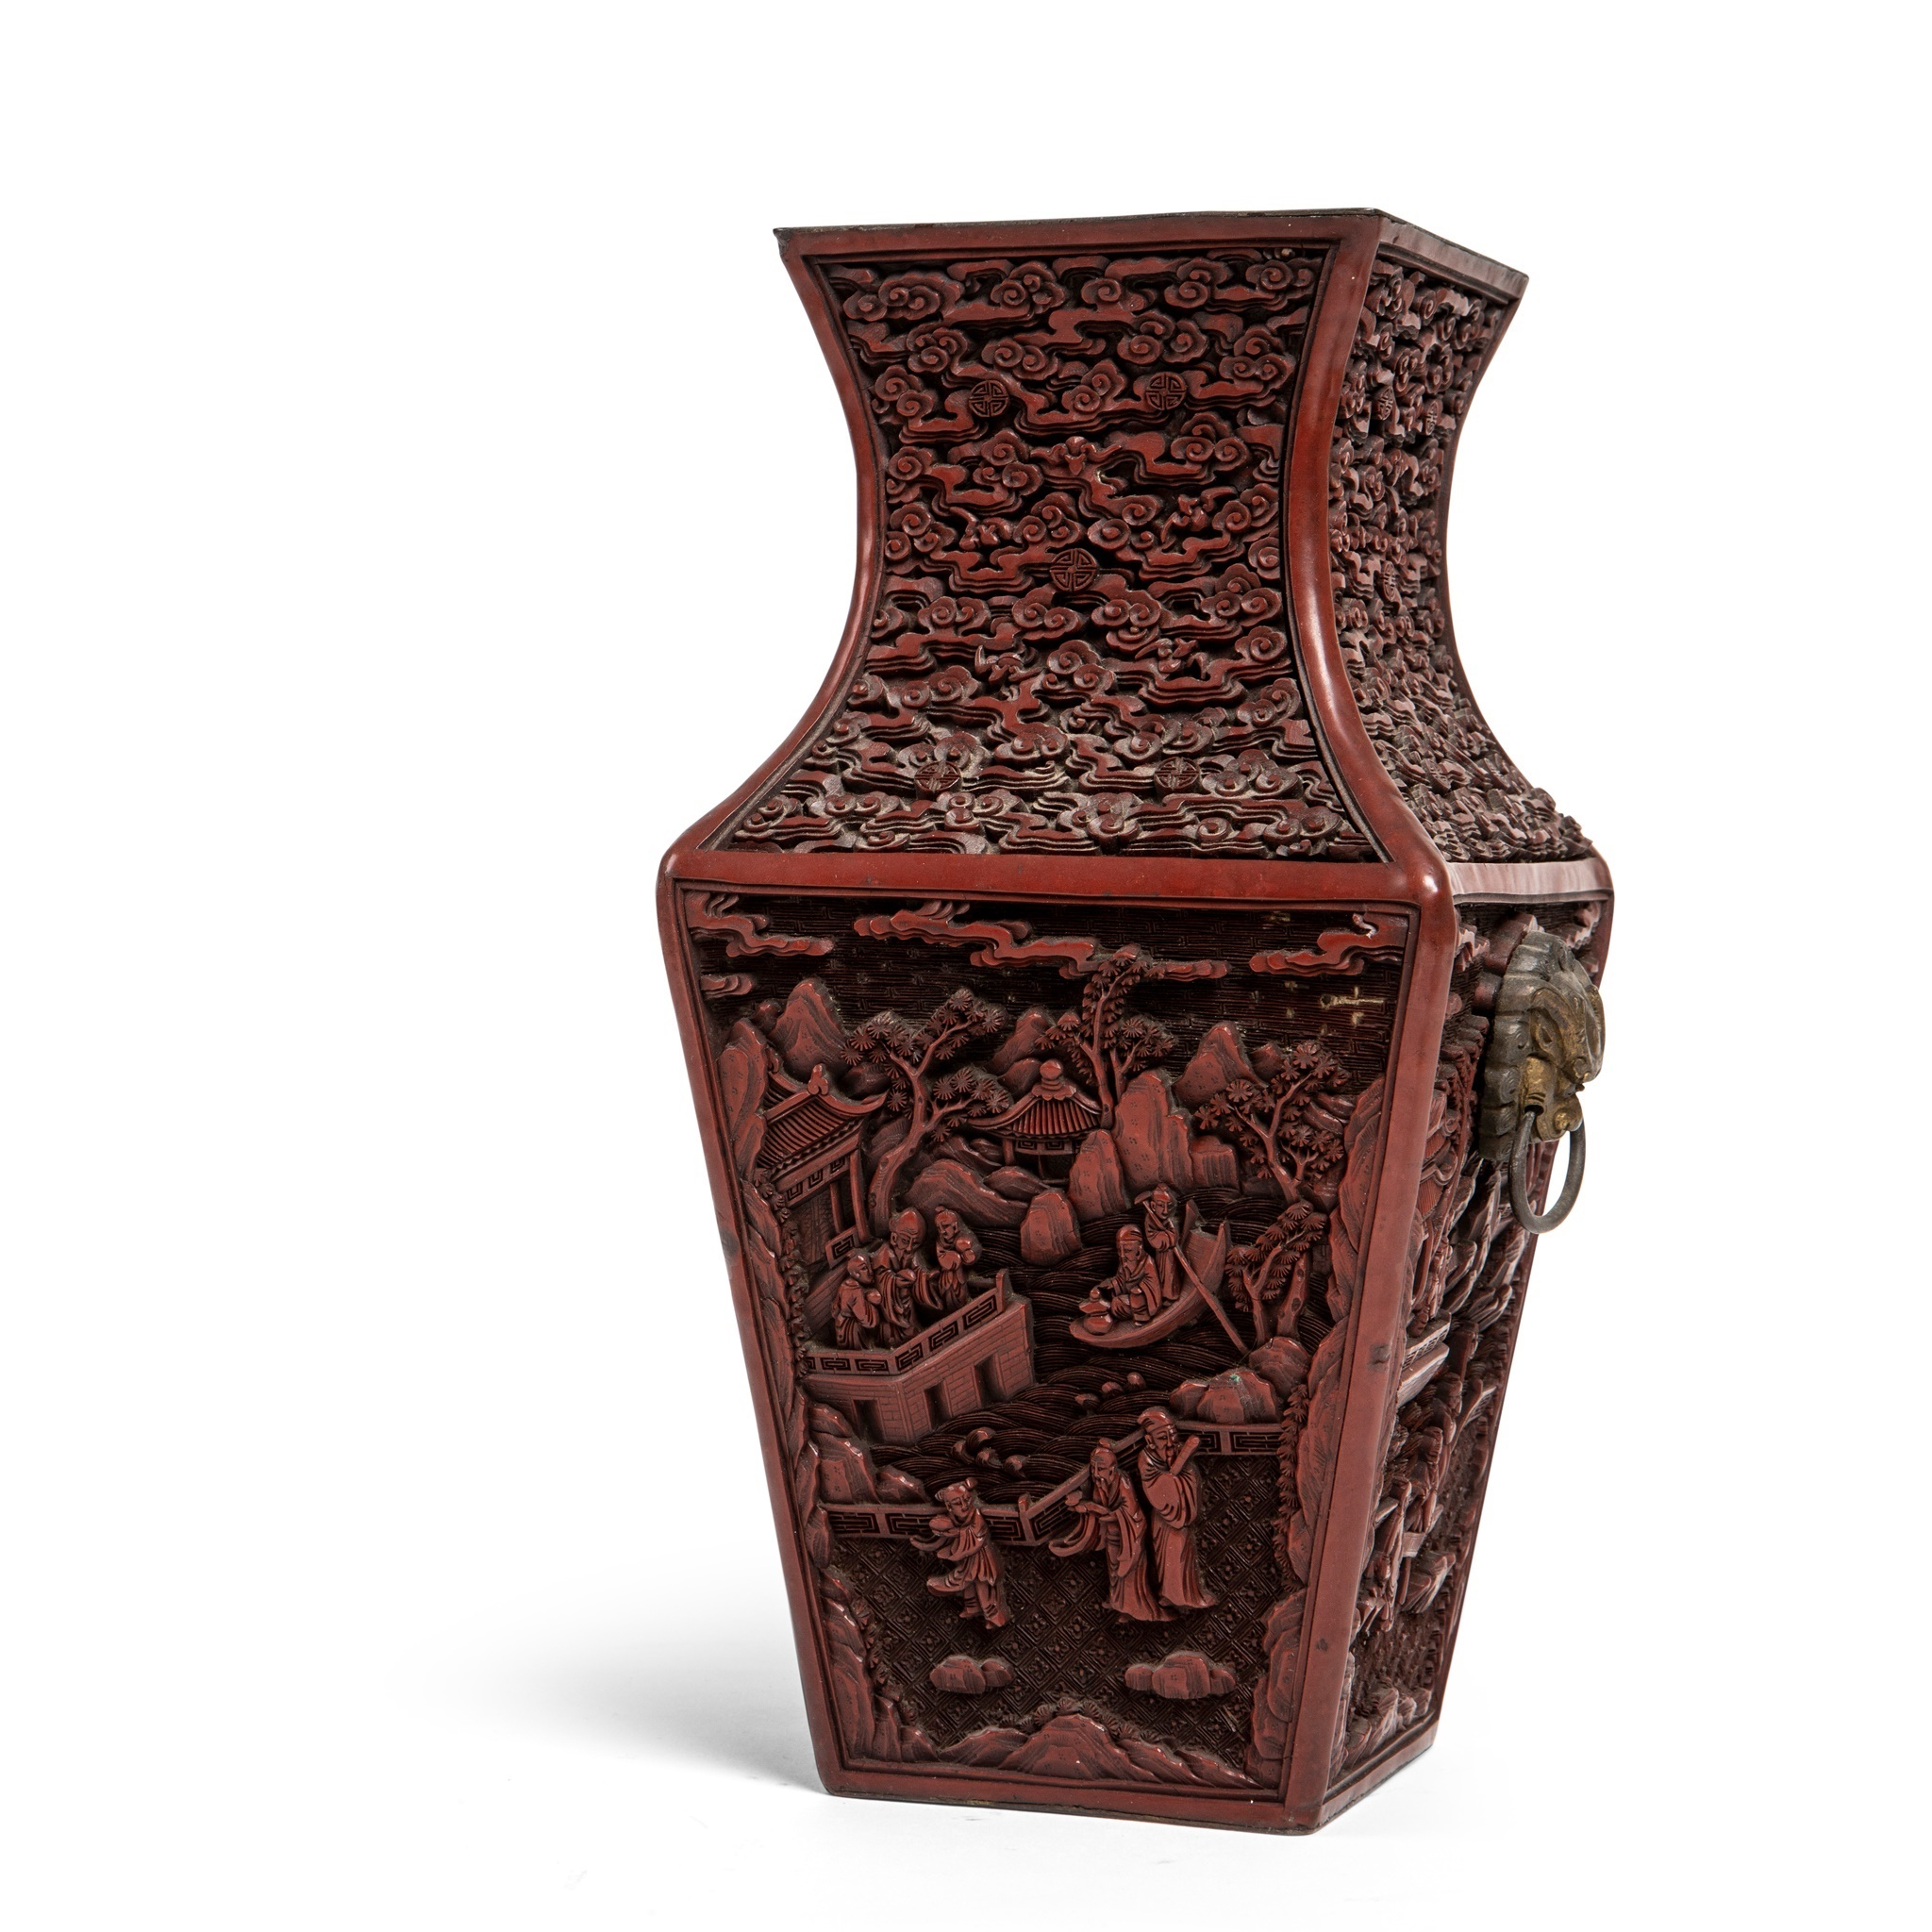 CINNABAR LACQUER SQUARE-SECTIONED VASE QING DYNASTY, 19TH CENTURY